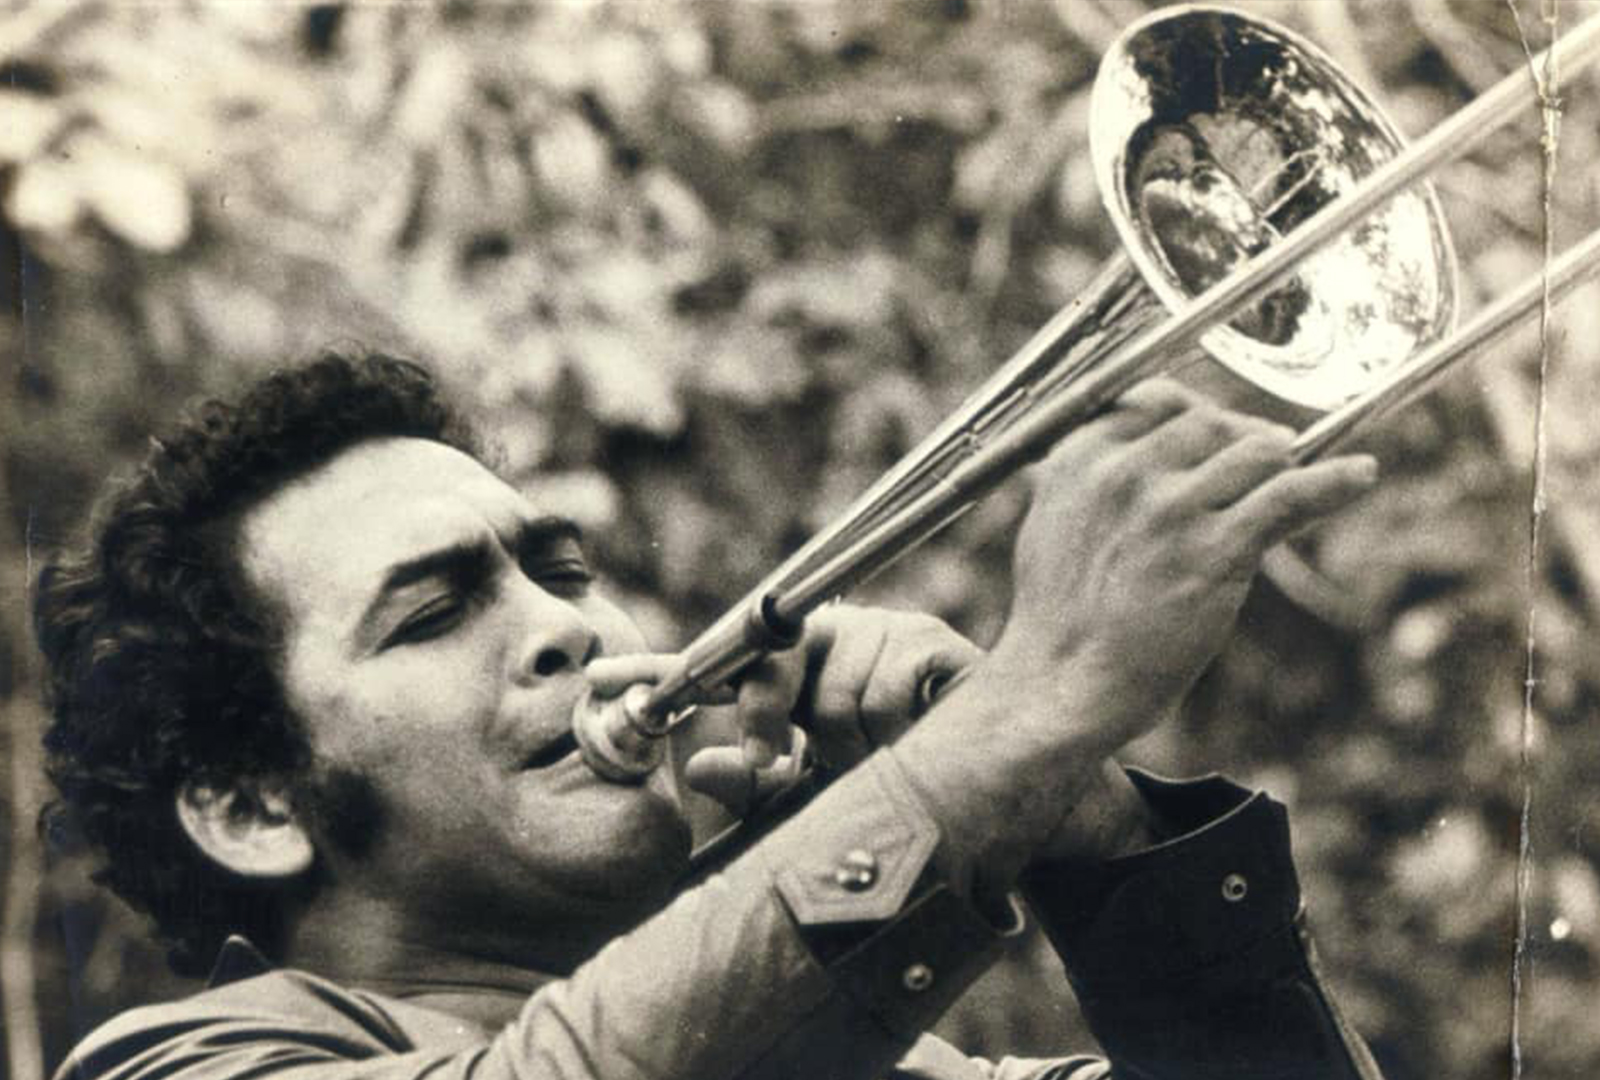 Cuban dance floor cuts from '75-'85 collected in new Soul Jazz comp